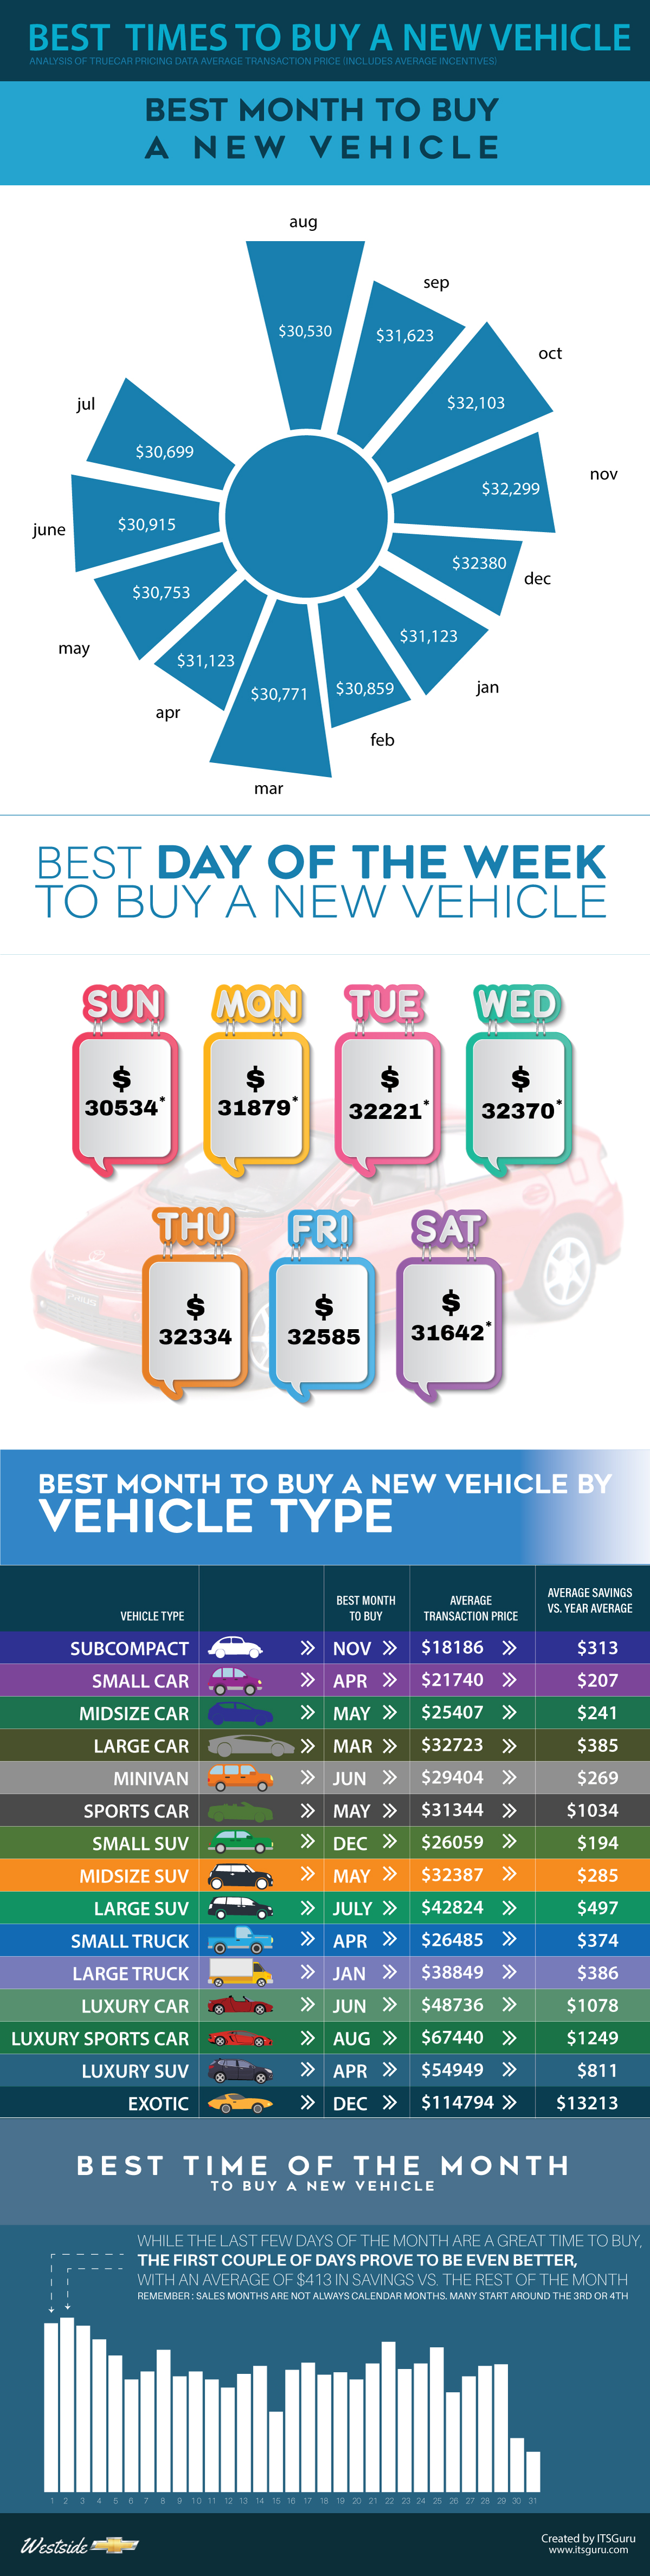 Best Time to Buy a New Vehicle